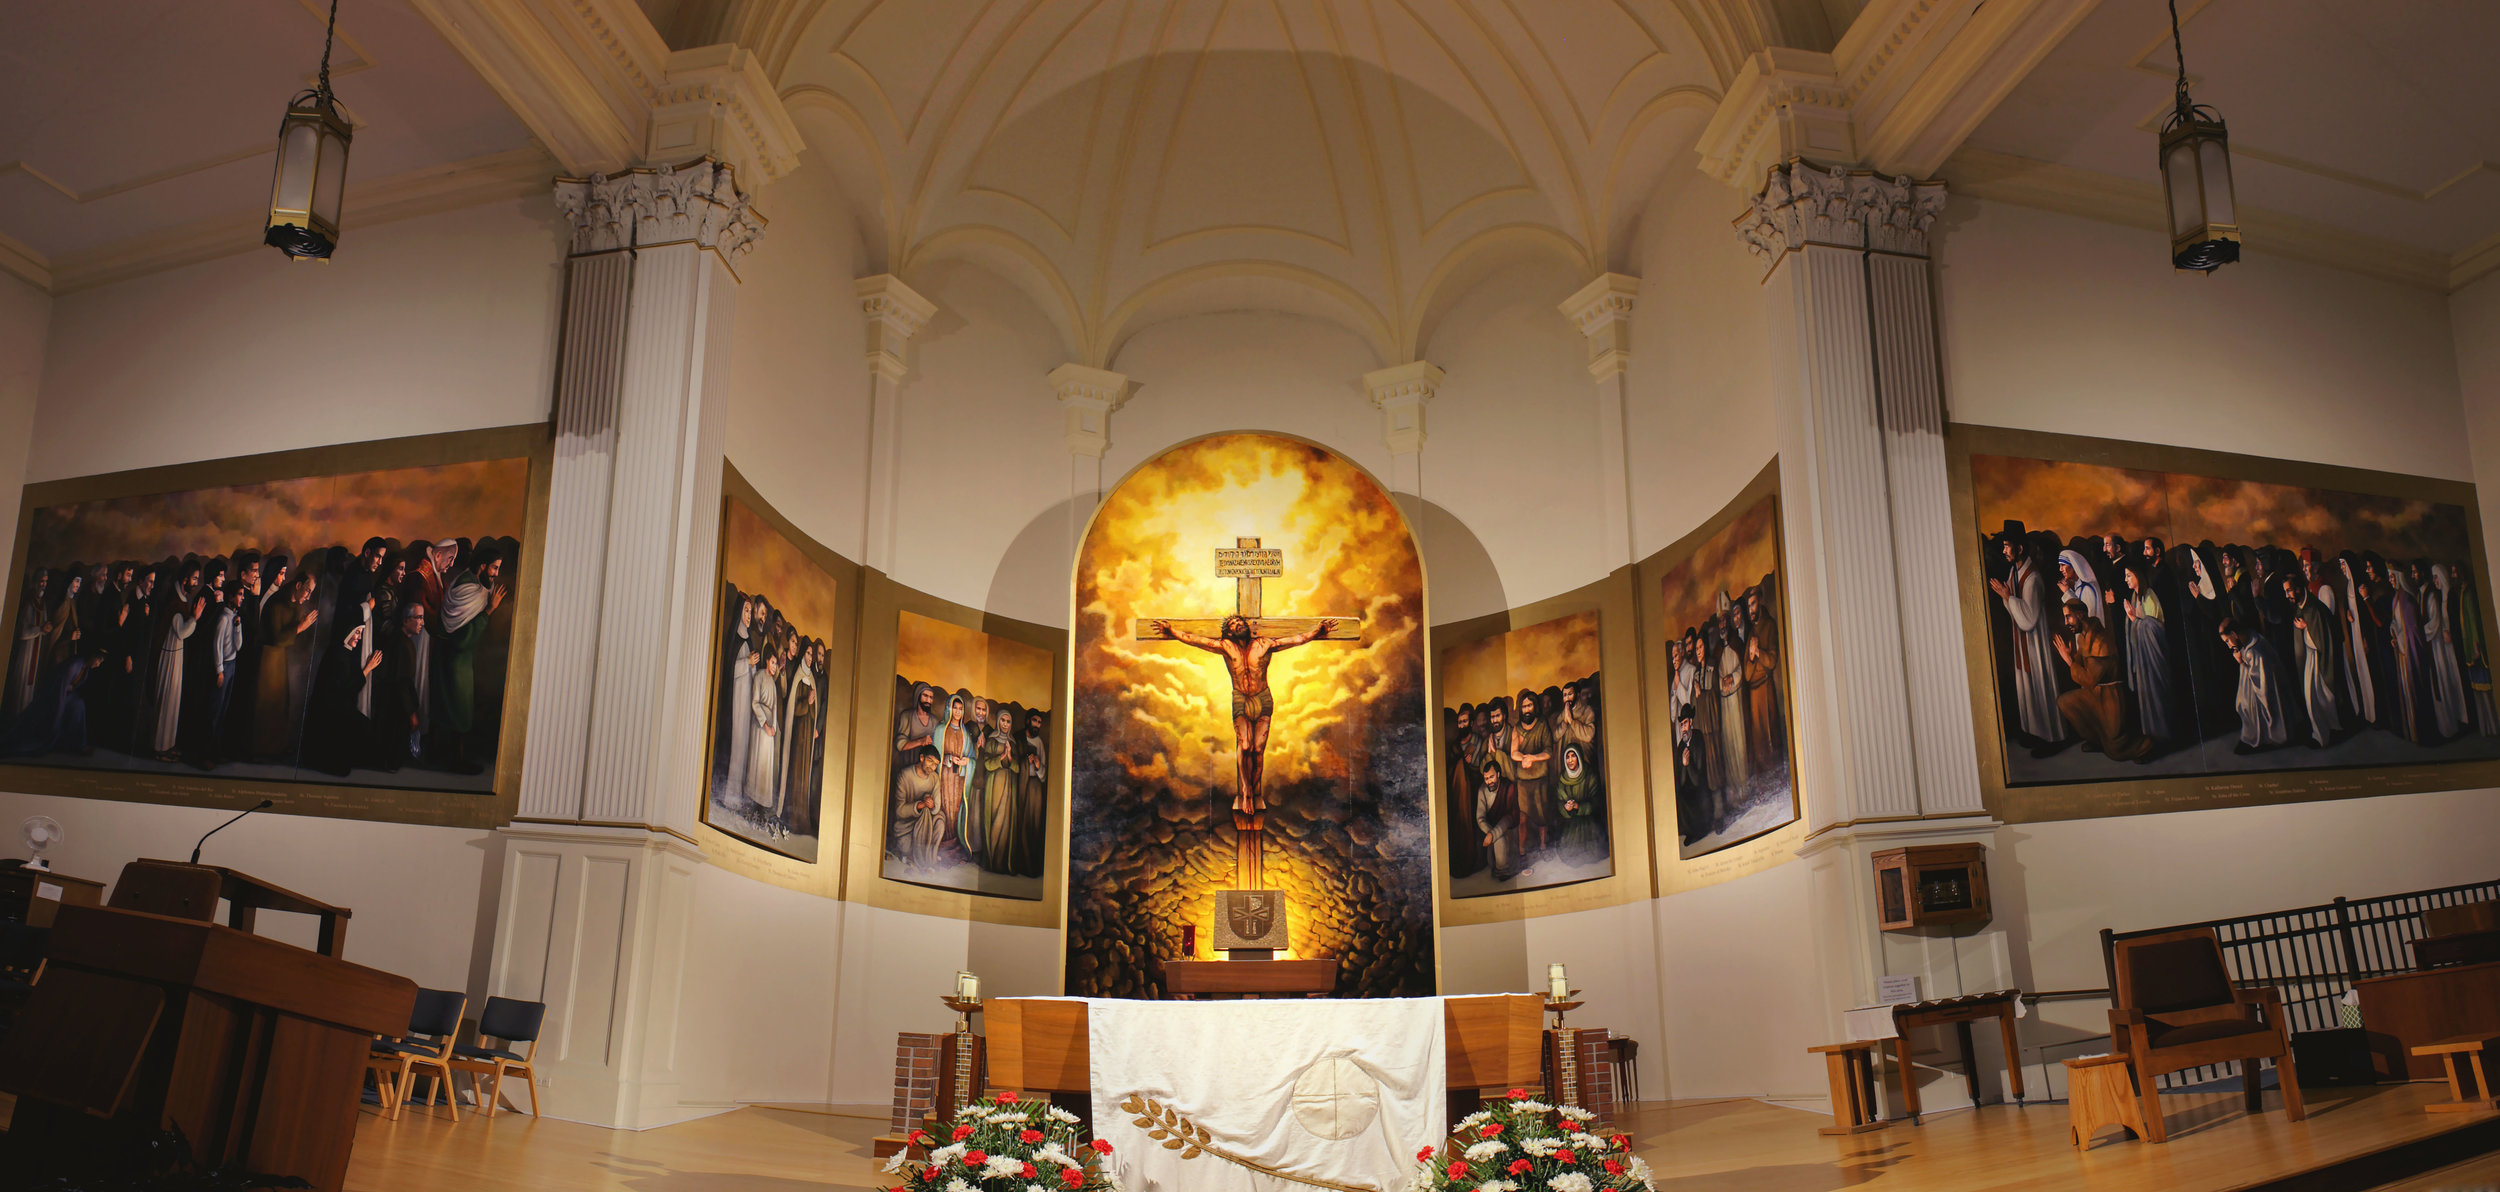 "Communion of Saints  (720x108"") and  The Crucifixion  (120x240"") are commissioned acrylic murals painted on canvas and panel, created for the sanctuary of St. Anne Church of  All Saints Parish , Alpena, MI in 2016-18. After a 2015 merging of the four independent parishes which make up All Saints Parish, the artworks were commissioned as a unifying architectural design element. They consist of a central depiction of the crucifixion and 62 life-size portraits of saints, including the four patron saints of the former parishes (St. Anne, St. Bernard, St. John the Baptist, and St. Mary, the Immaculate Conception)."